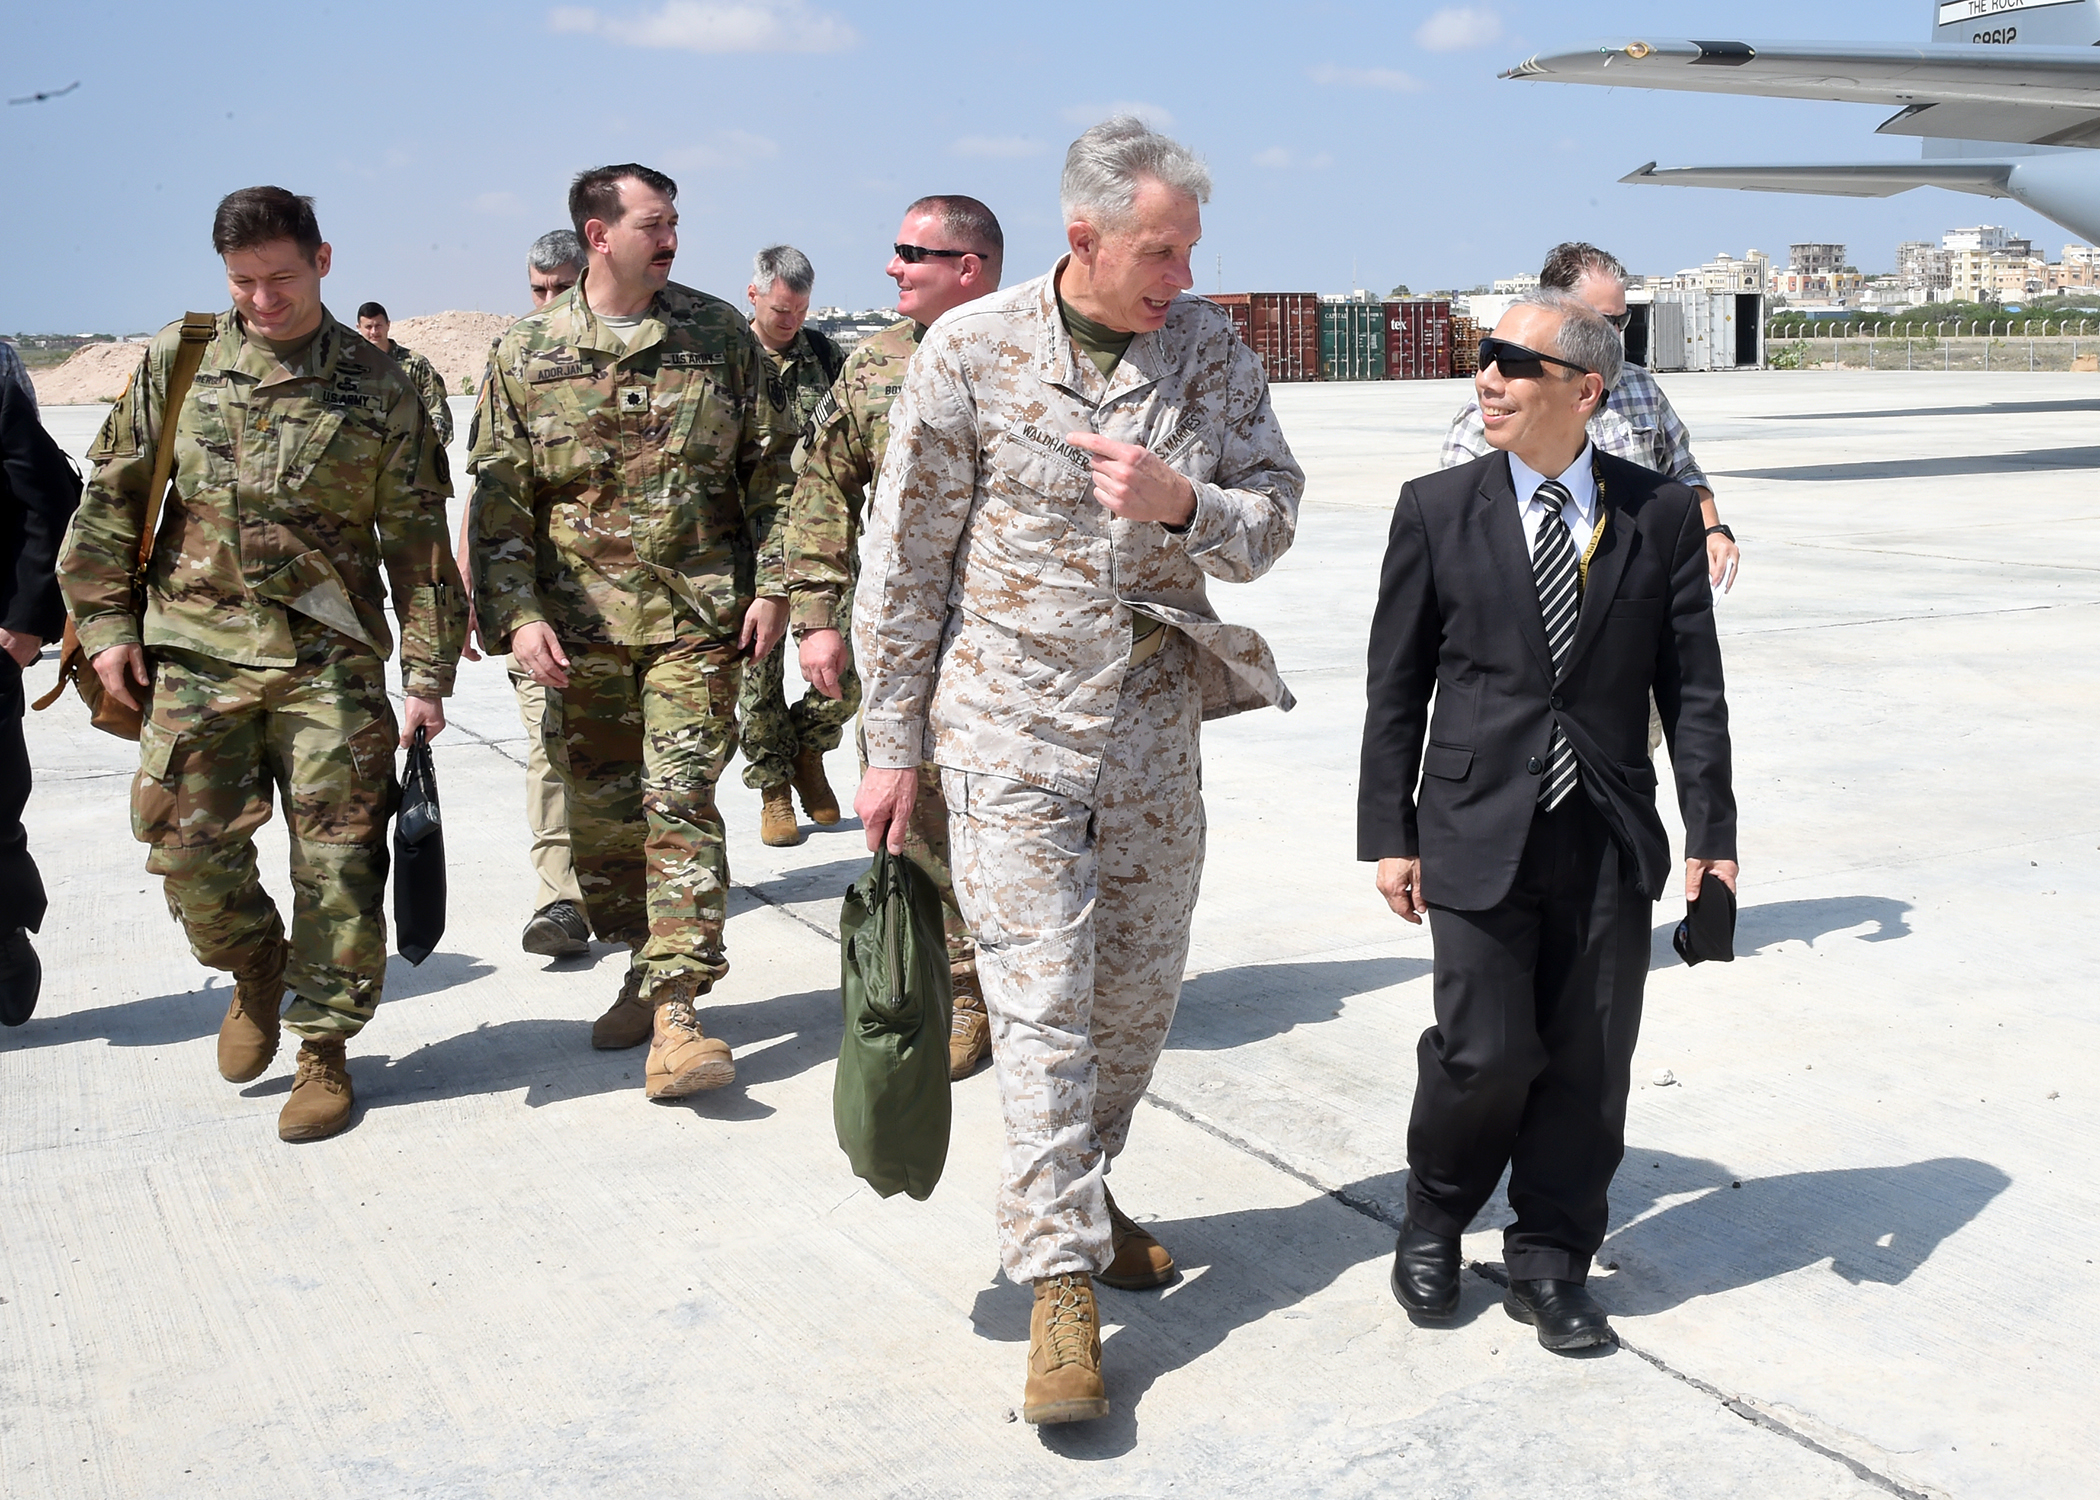 MOGADISHU, Somalia – U.S. Marine Gen. Thomas D. Waldhauser, commanding general, U.S. Africa Command, speaks with U.S. Ambassador to Somalia Donald Yamamoto, at Aden Adde International Airport in Mogadishu, Somalia Nov. 27, 2018. During his visit to Mogadishu, Waldhauser also met with Somali President Mohamed Abdullahi Mohamed to discuss development, security and stability in Somalia.